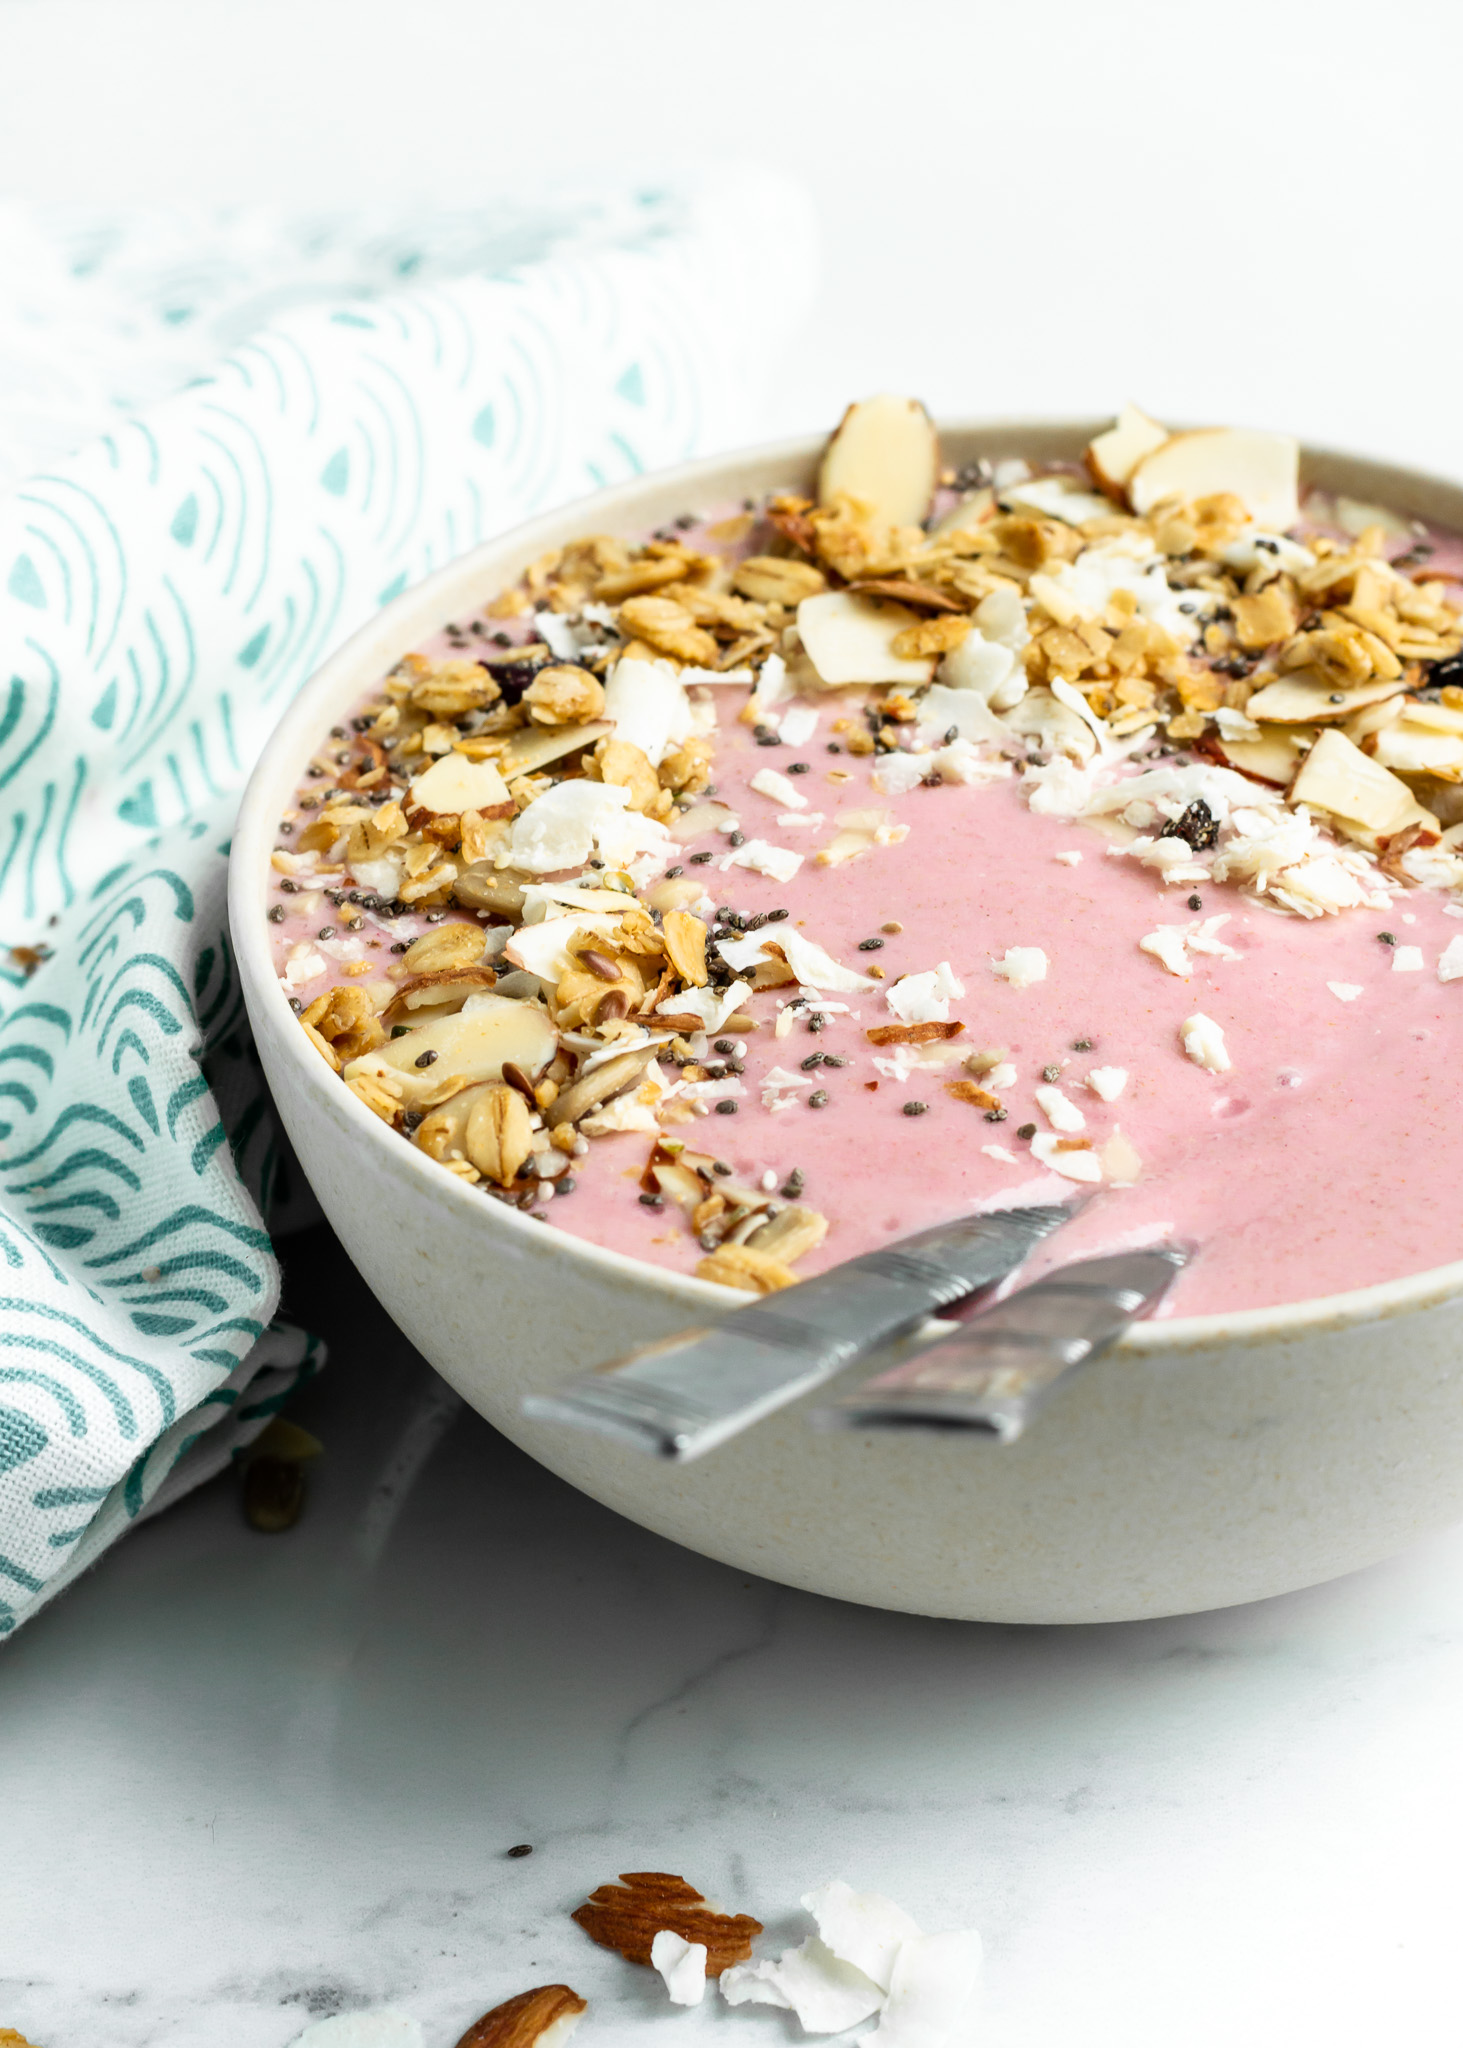 A healthy Strawberry Banana Smoothie Bowl recipe made with coconut milk, oats, honey and a secret ingredient - cauliflower! This easy to make smoothie blends up in minutes making it the perfect breakfast choice for any morning. The best part? It's made with simple clean eating ingredients and is gluten free, dairy free and vegan possible too!